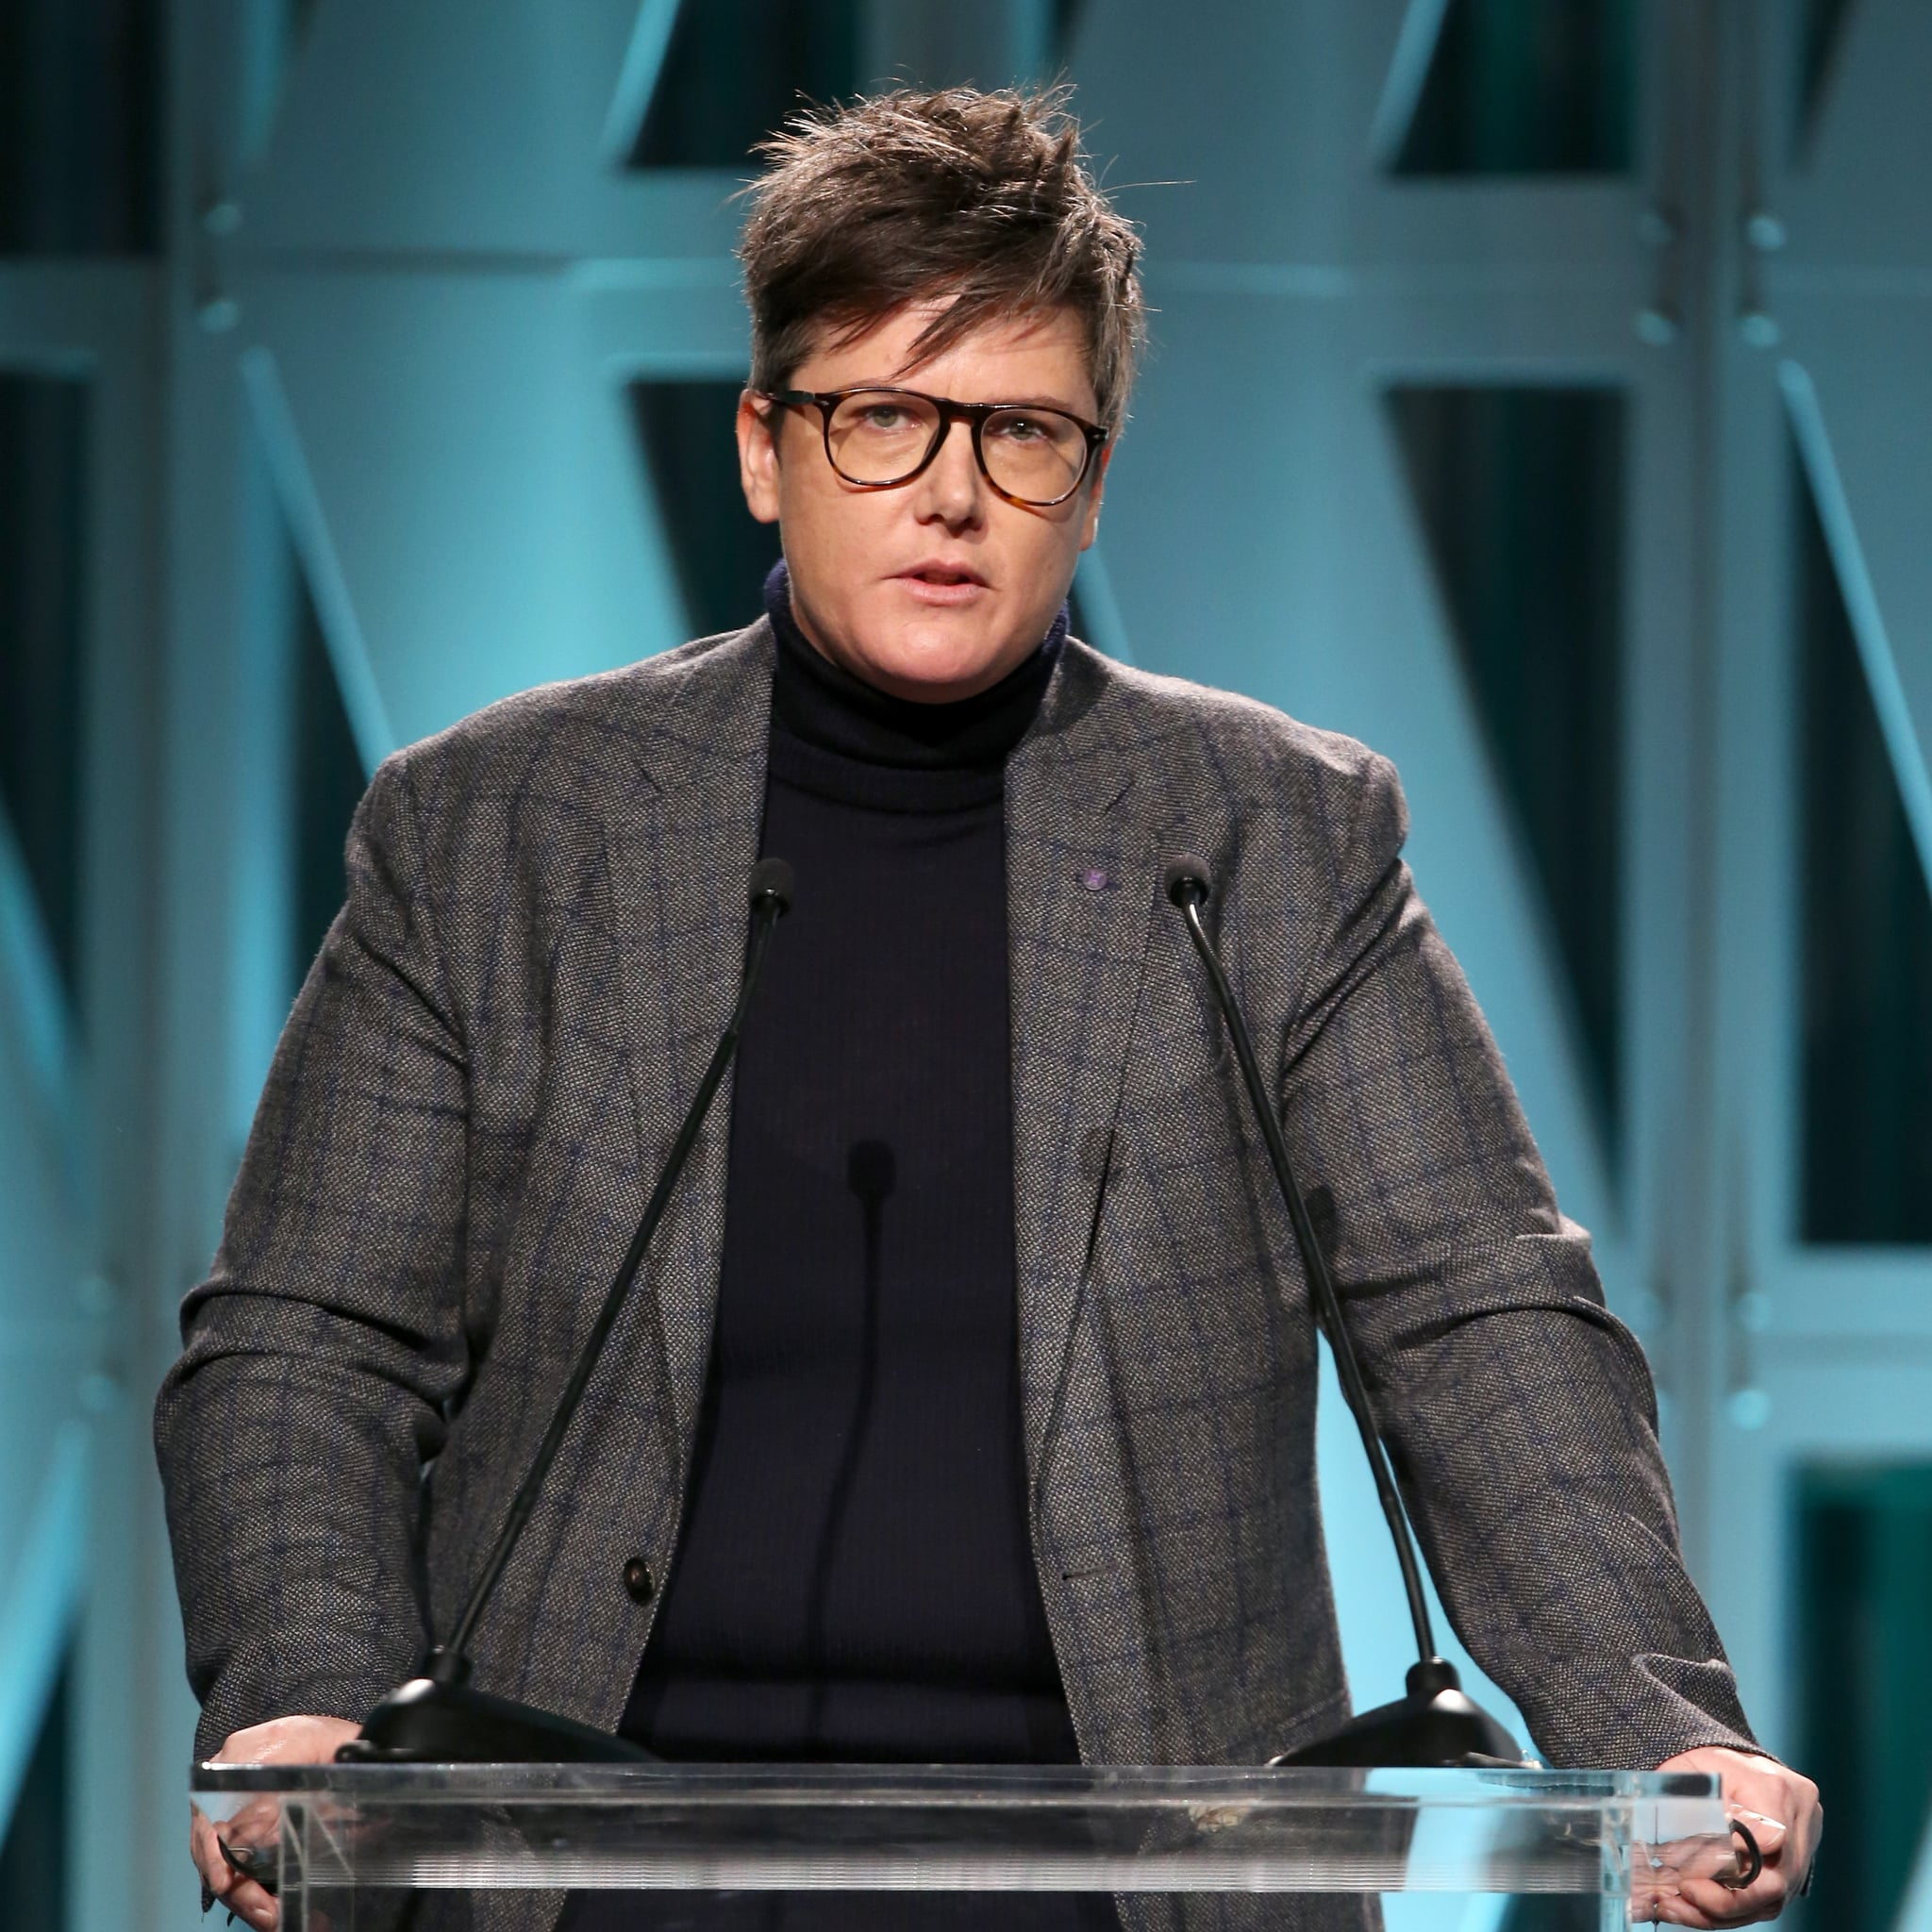 LOS ANGELES, CA - DECEMBER 05:  Hannah Gadsby speaks onstage during The Hollywood Reporter's Power 100 Women In Entertainment at Milk Studios on December 5, 2018 in Los Angeles, California.  (Photo by Jesse Grant/Getty Images for The Hollywood Reporter )